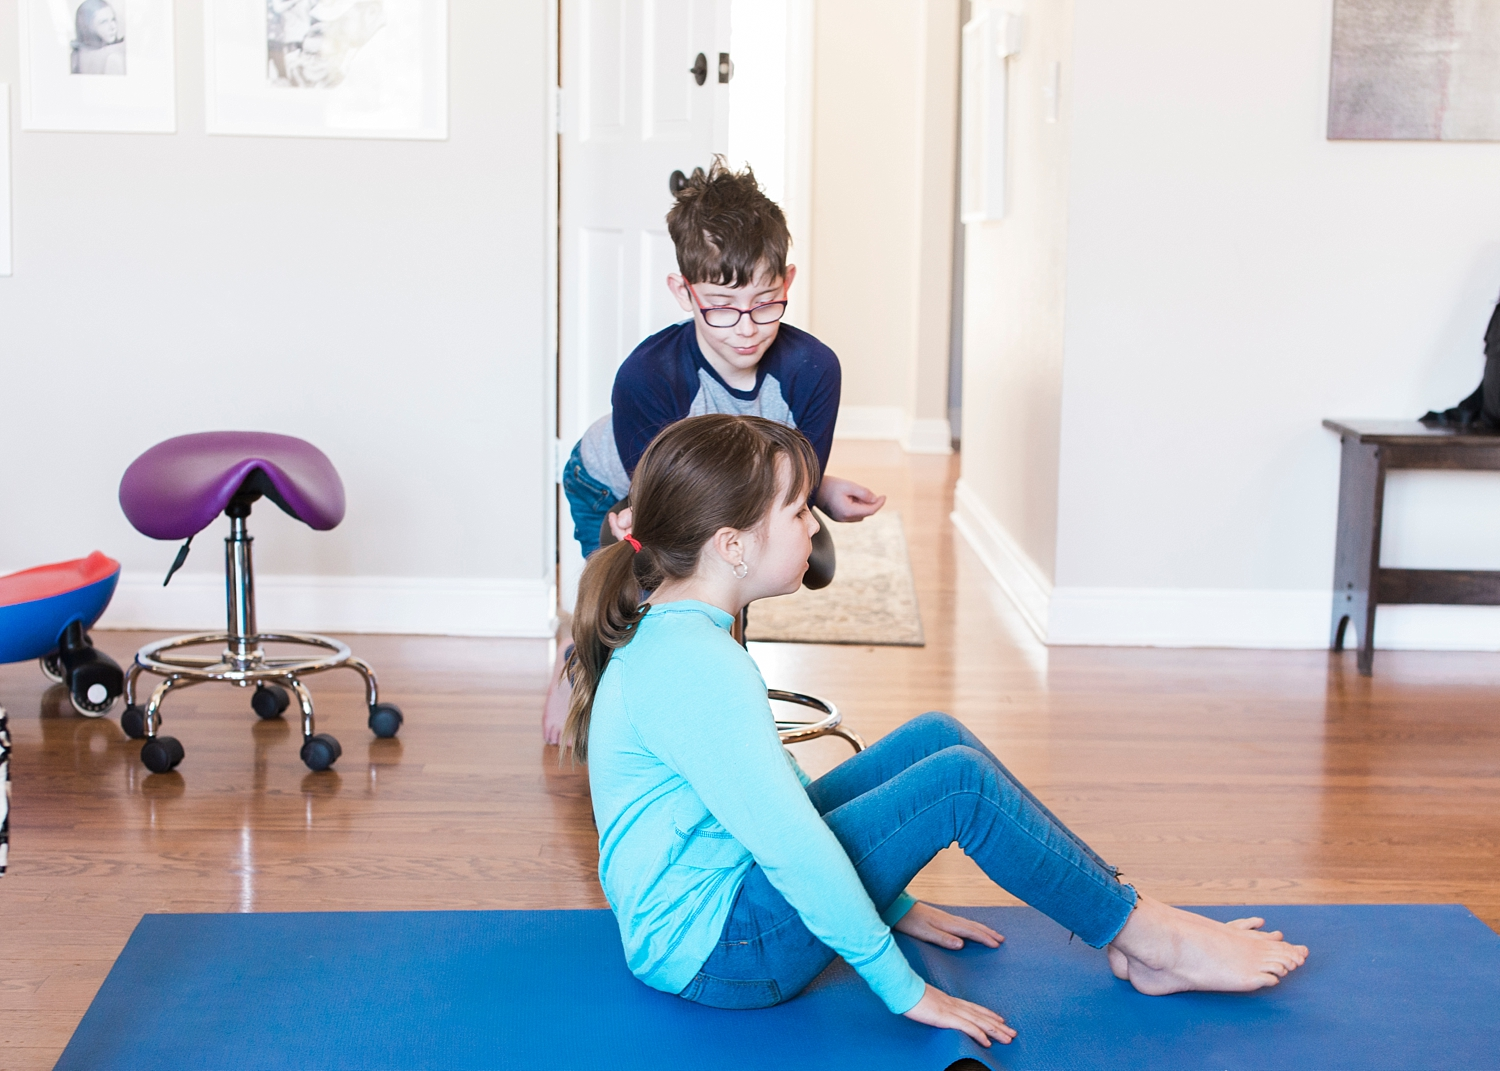 Work those abs! We're trying to incorporate more recess and exercise into our typical unschooling day! See what else we've been up to over on the blog :)